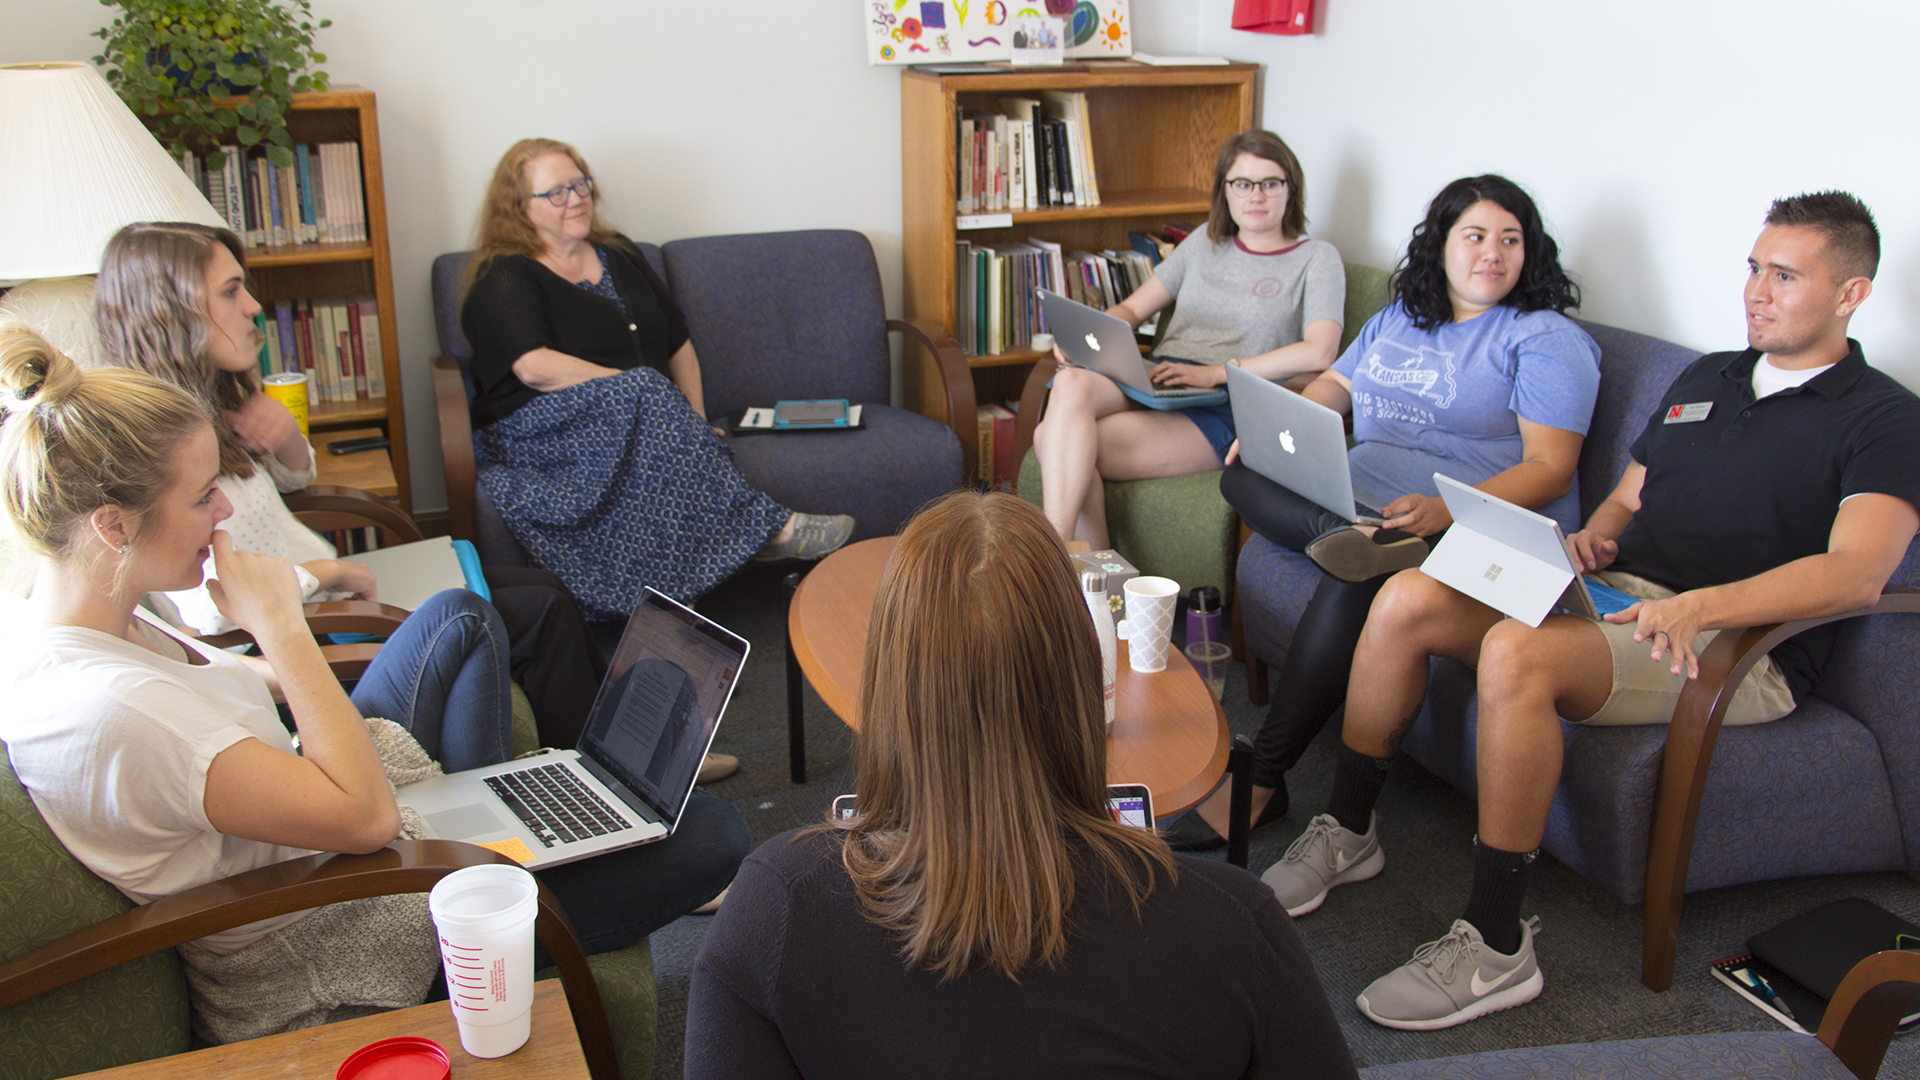 Students meet at the Women's Center to plan upcoming events